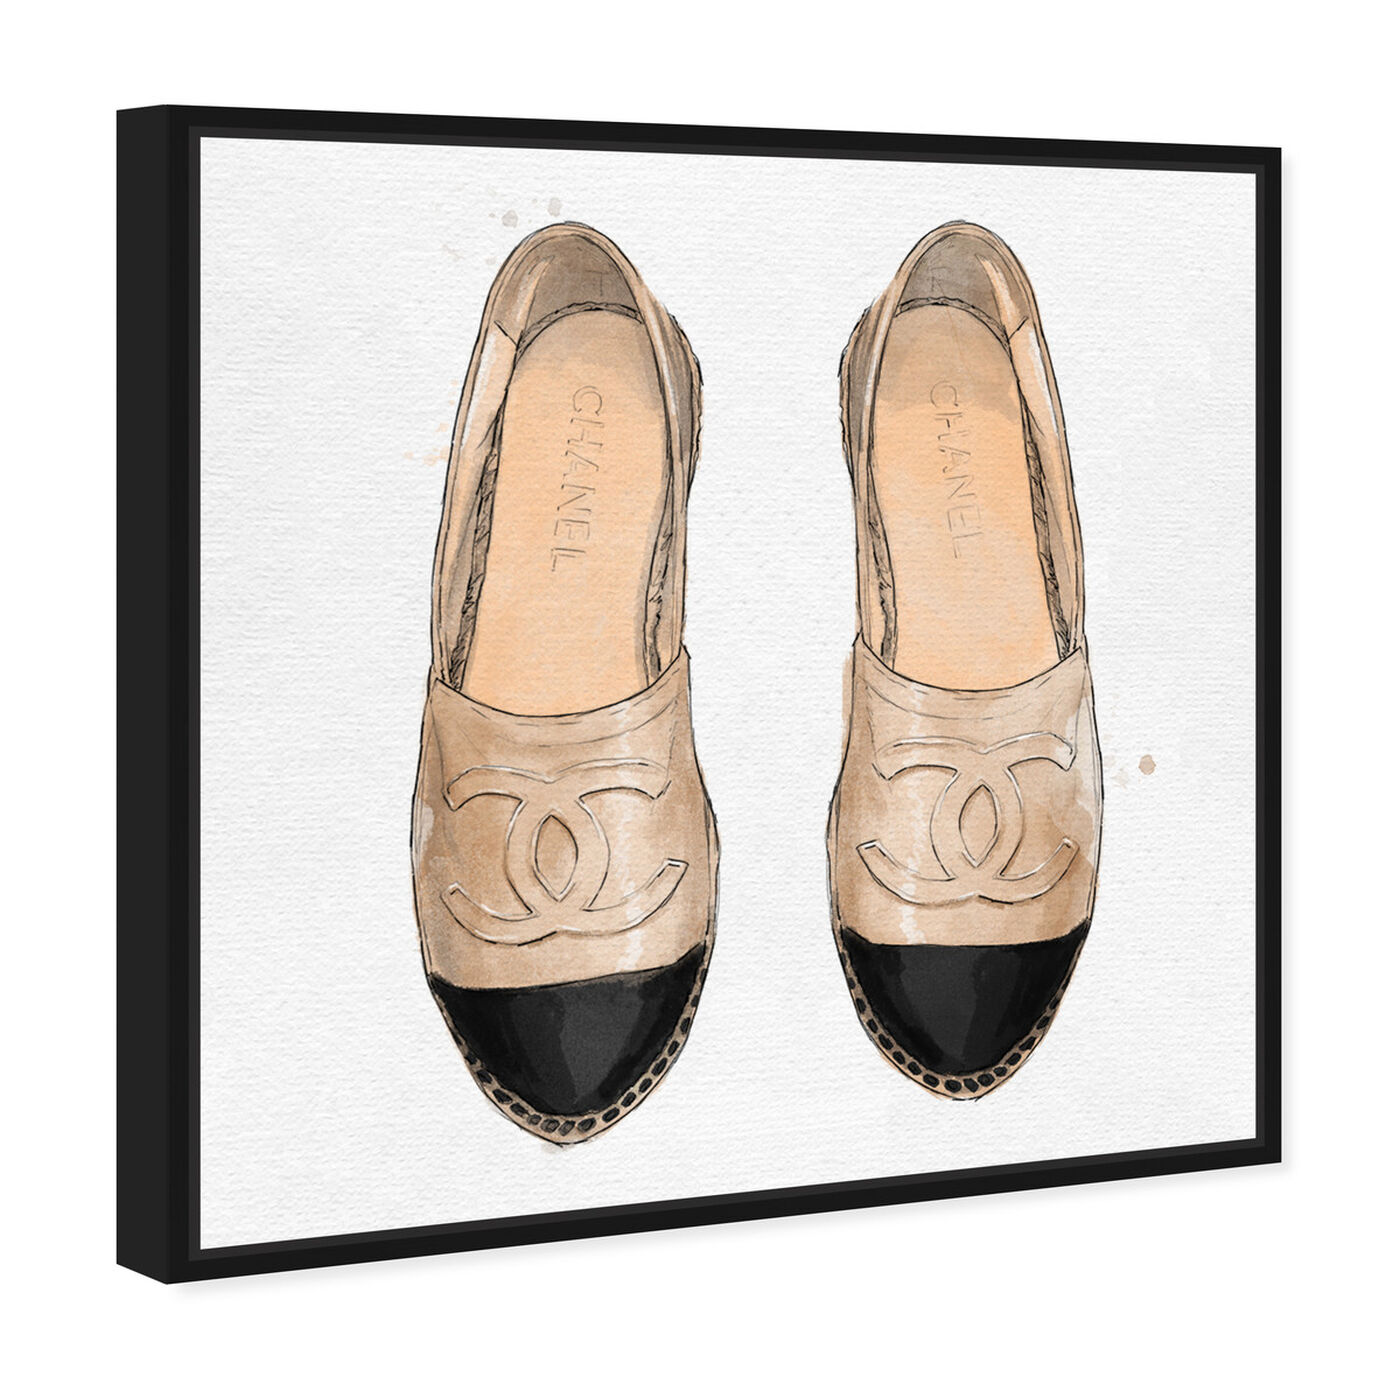 Angled view of Lady Slippers featuring fashion and glam and shoes art.